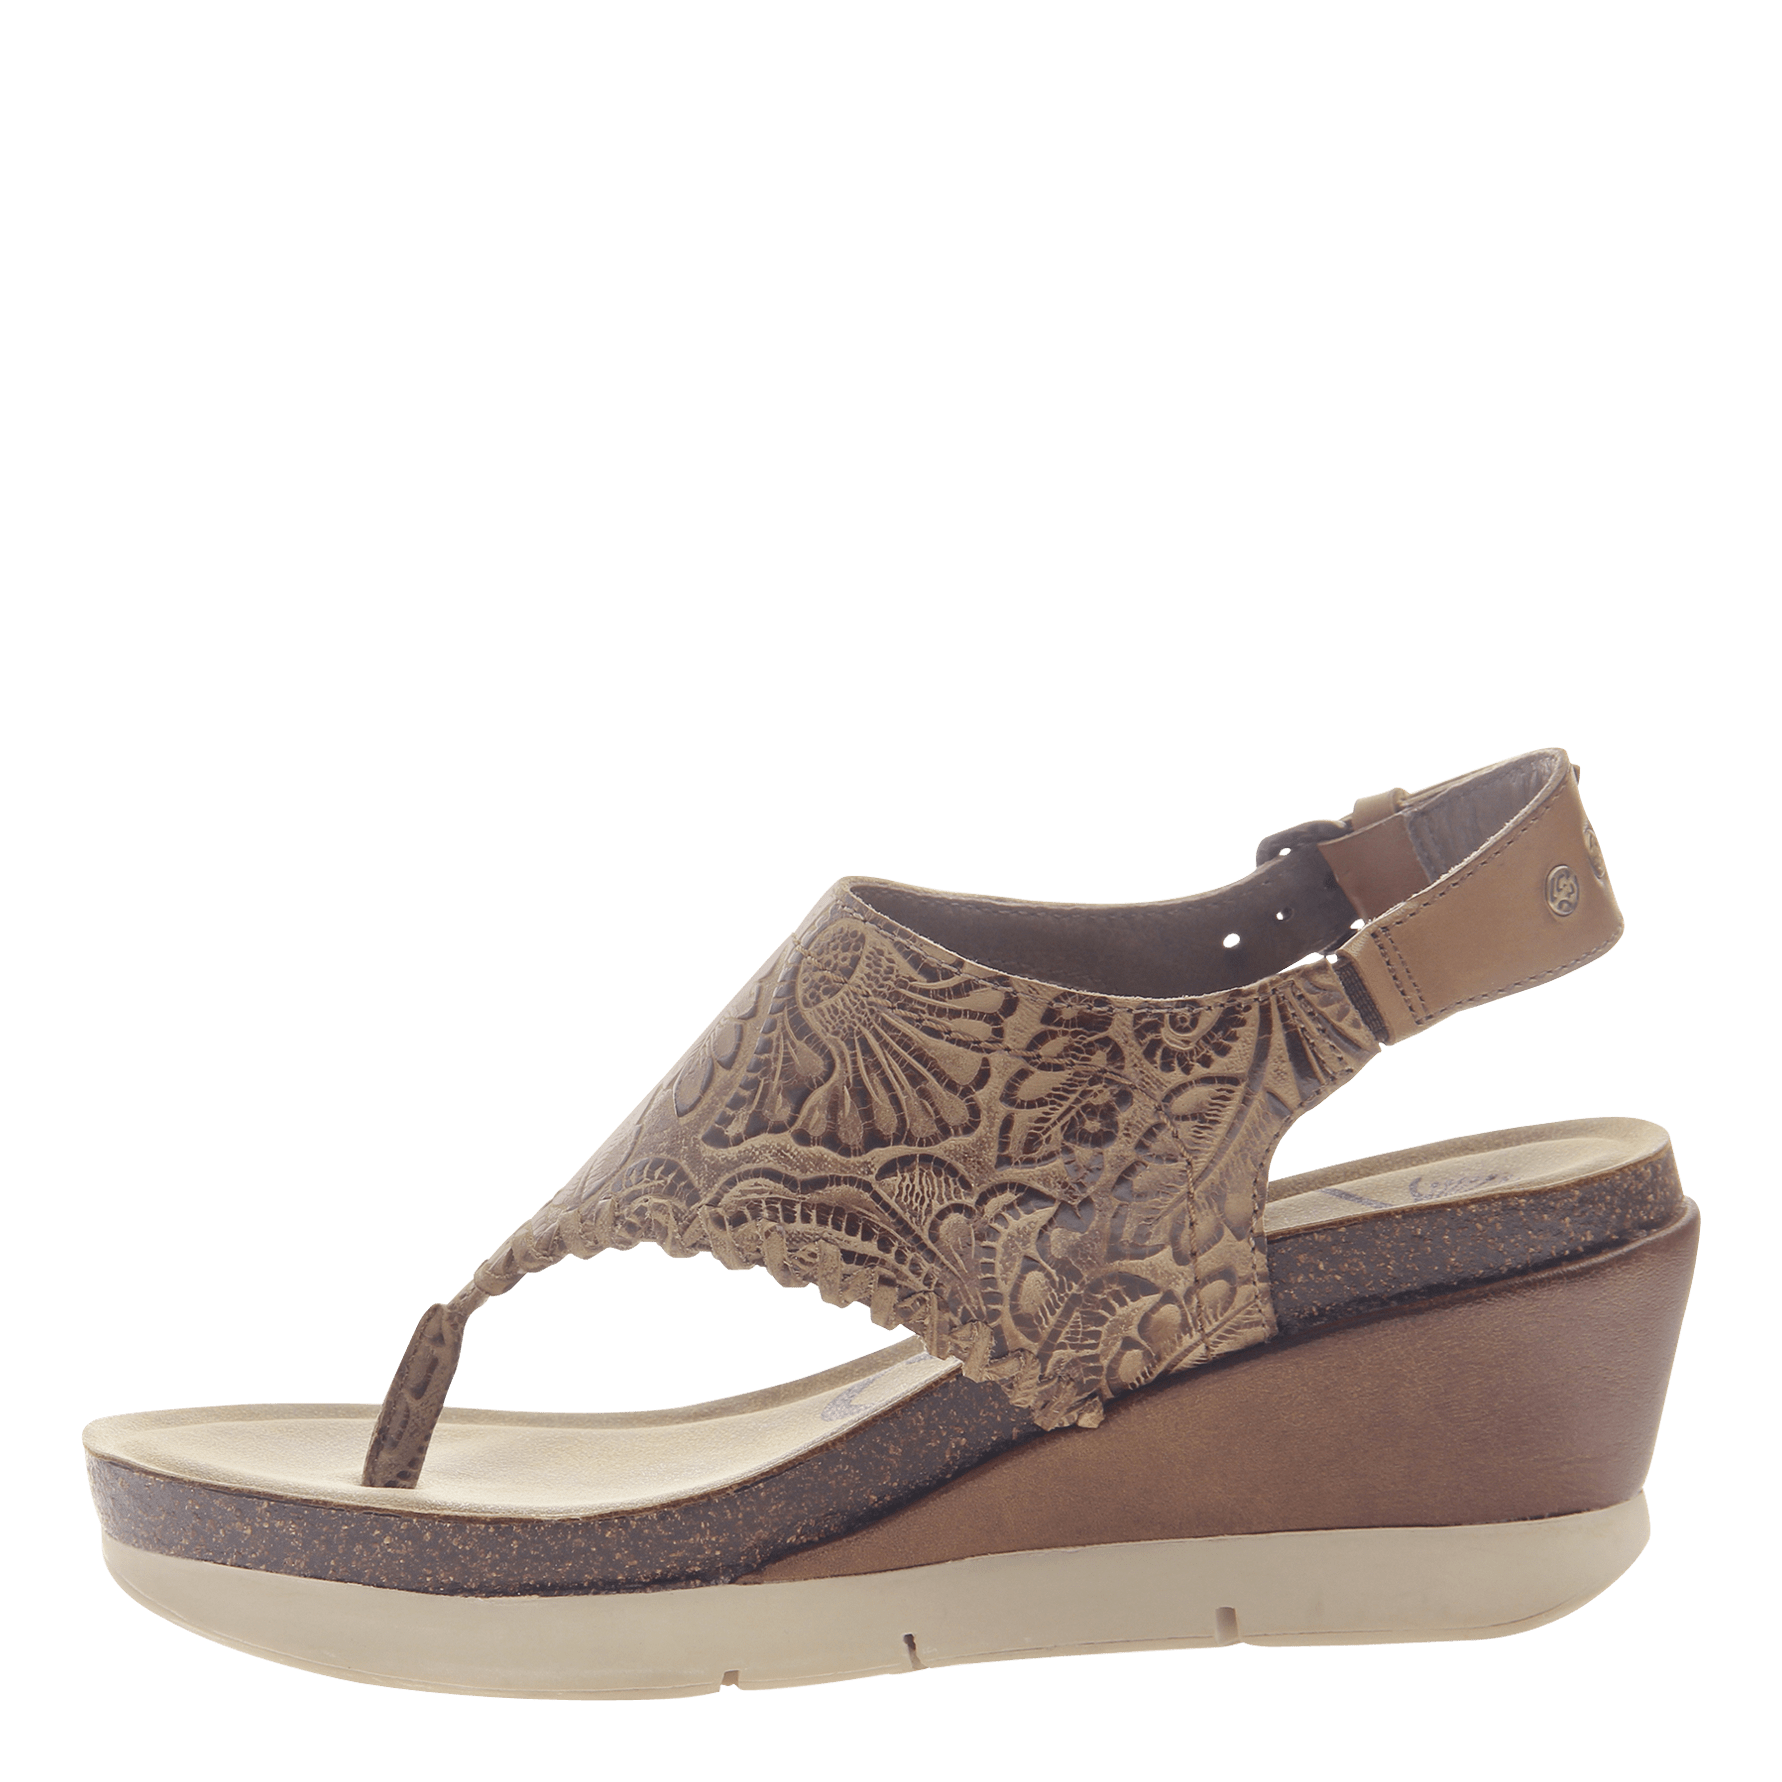 ac66f8eee574de Womens thong wedge sandal Meditate in hickory inside view